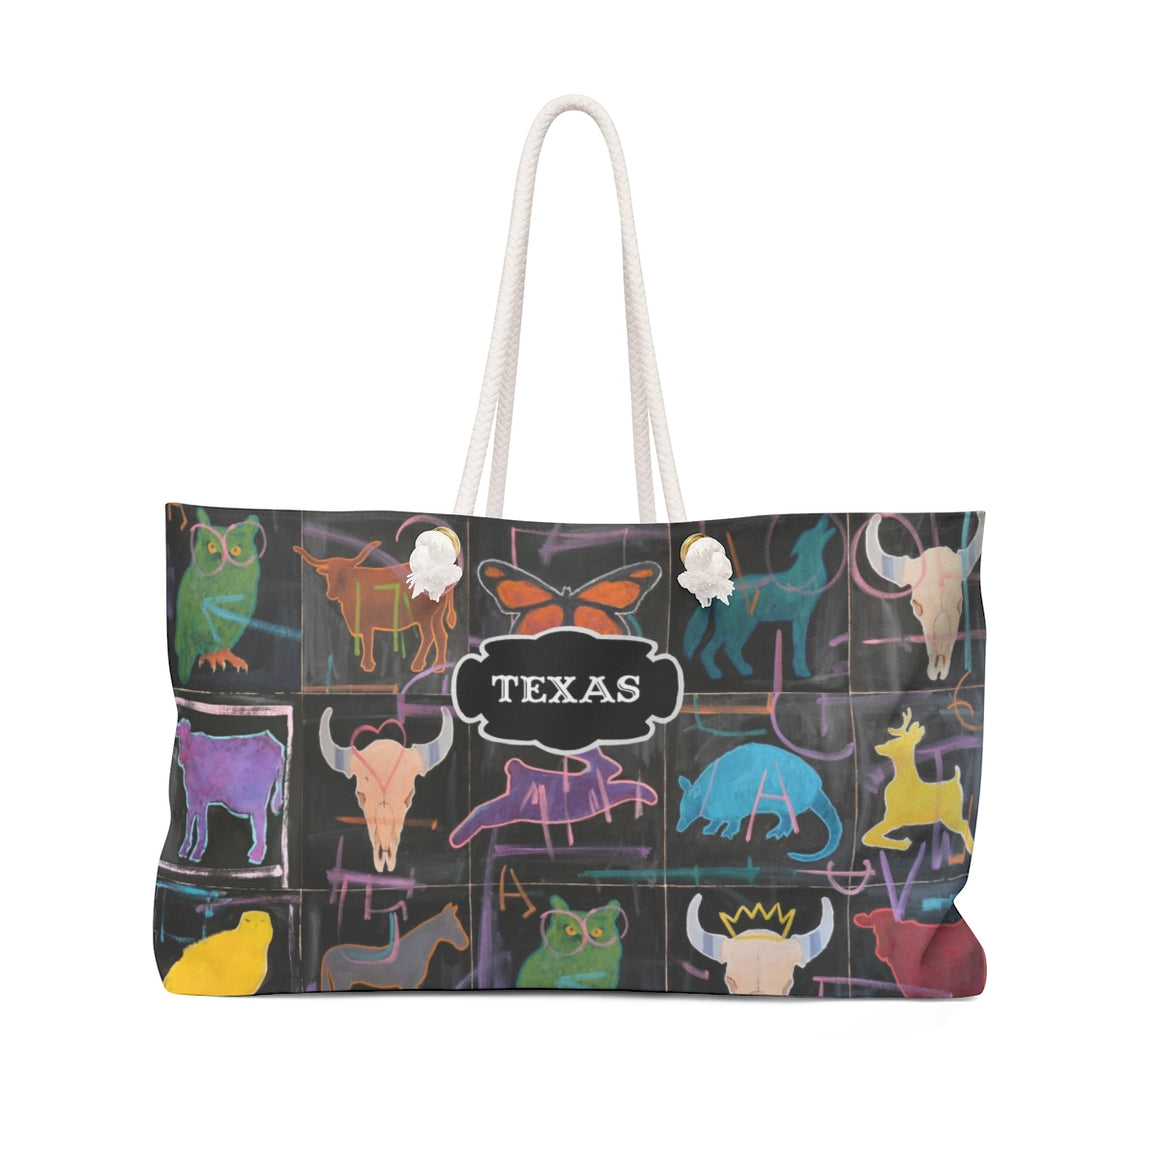 Texas Wildlife tote bag